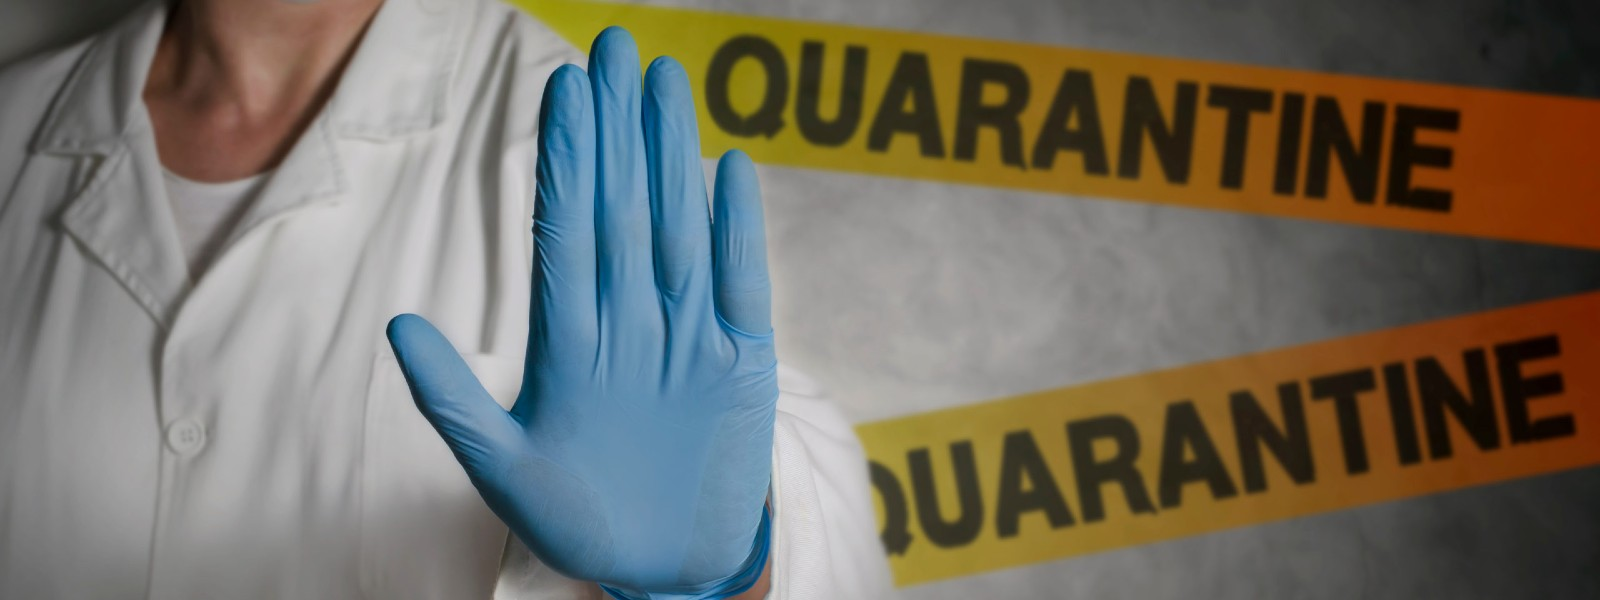 6,176 people in 57 tri-service-managed QCs are still in quarantine